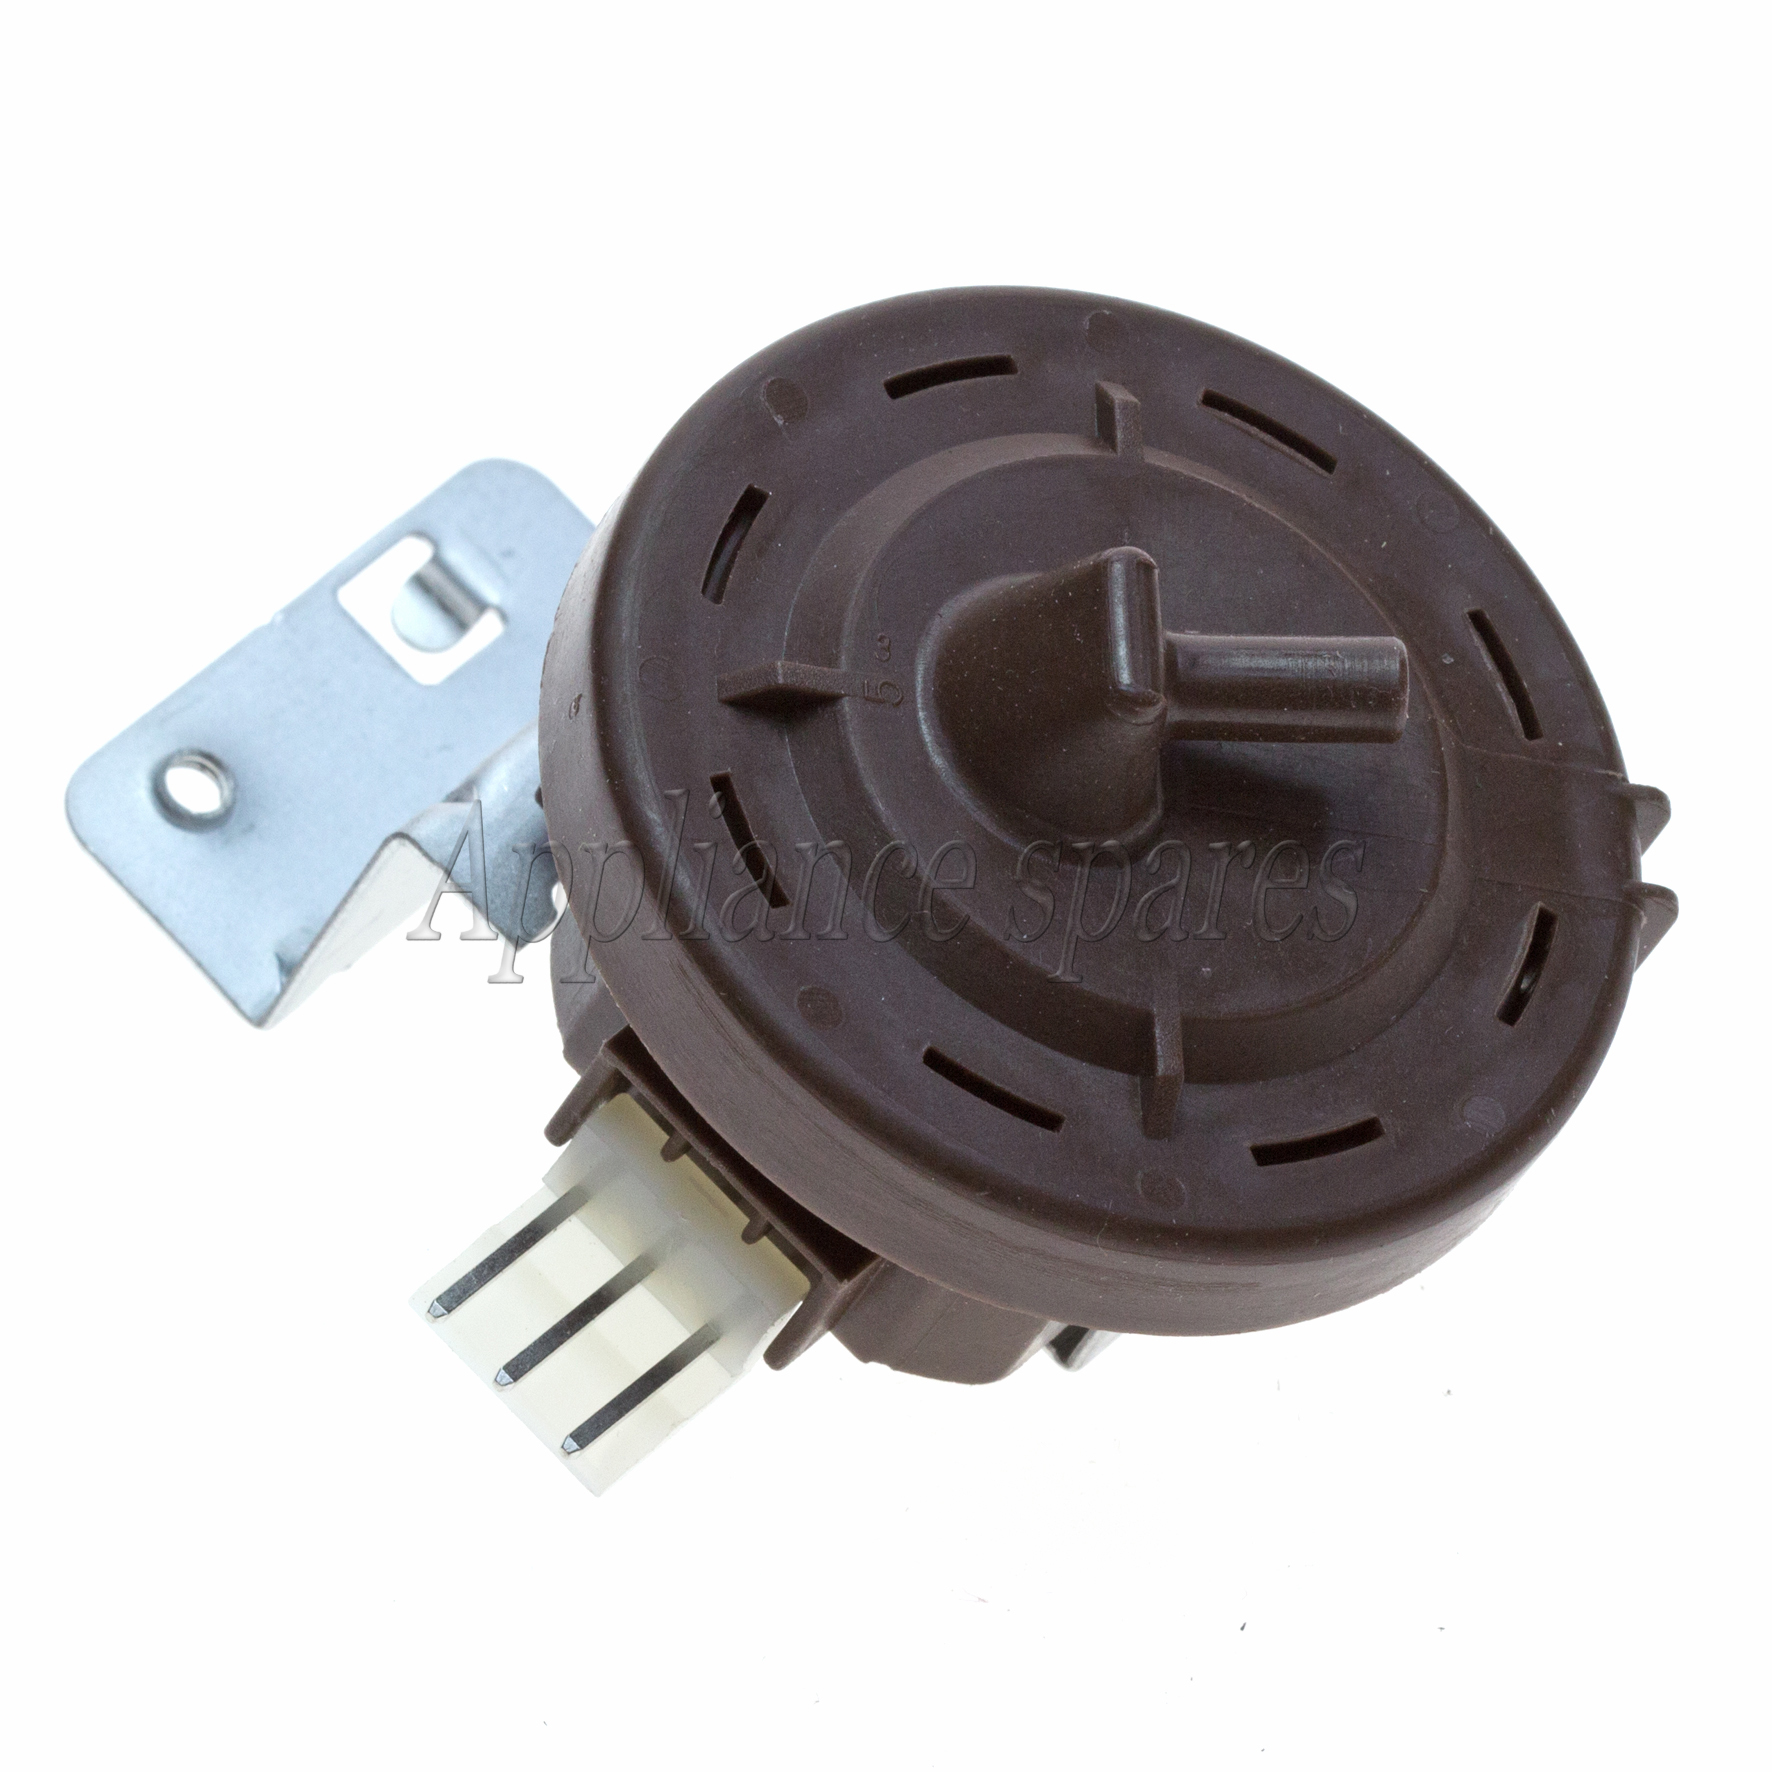 SAMSUNG FRONT LOADER WASHING MACHINE PRESSURE SWITCH (3 CONNECTIONS on